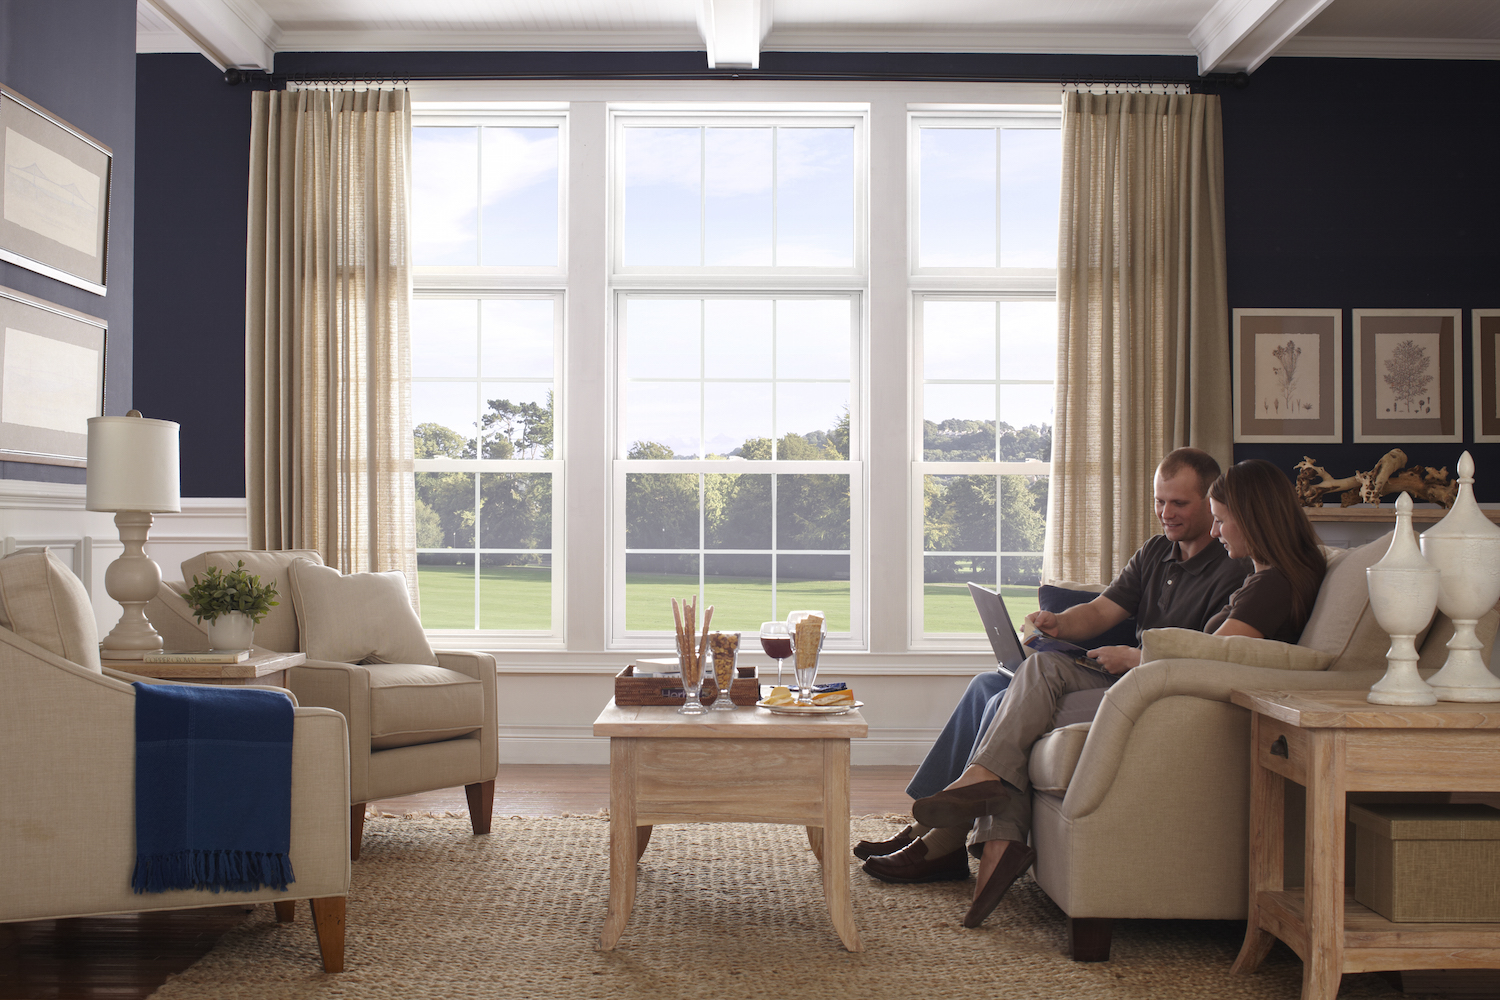 Windows From Floor To Ceiling. Interior View Of Living Room With Colonial  Grid Double Hung Windows